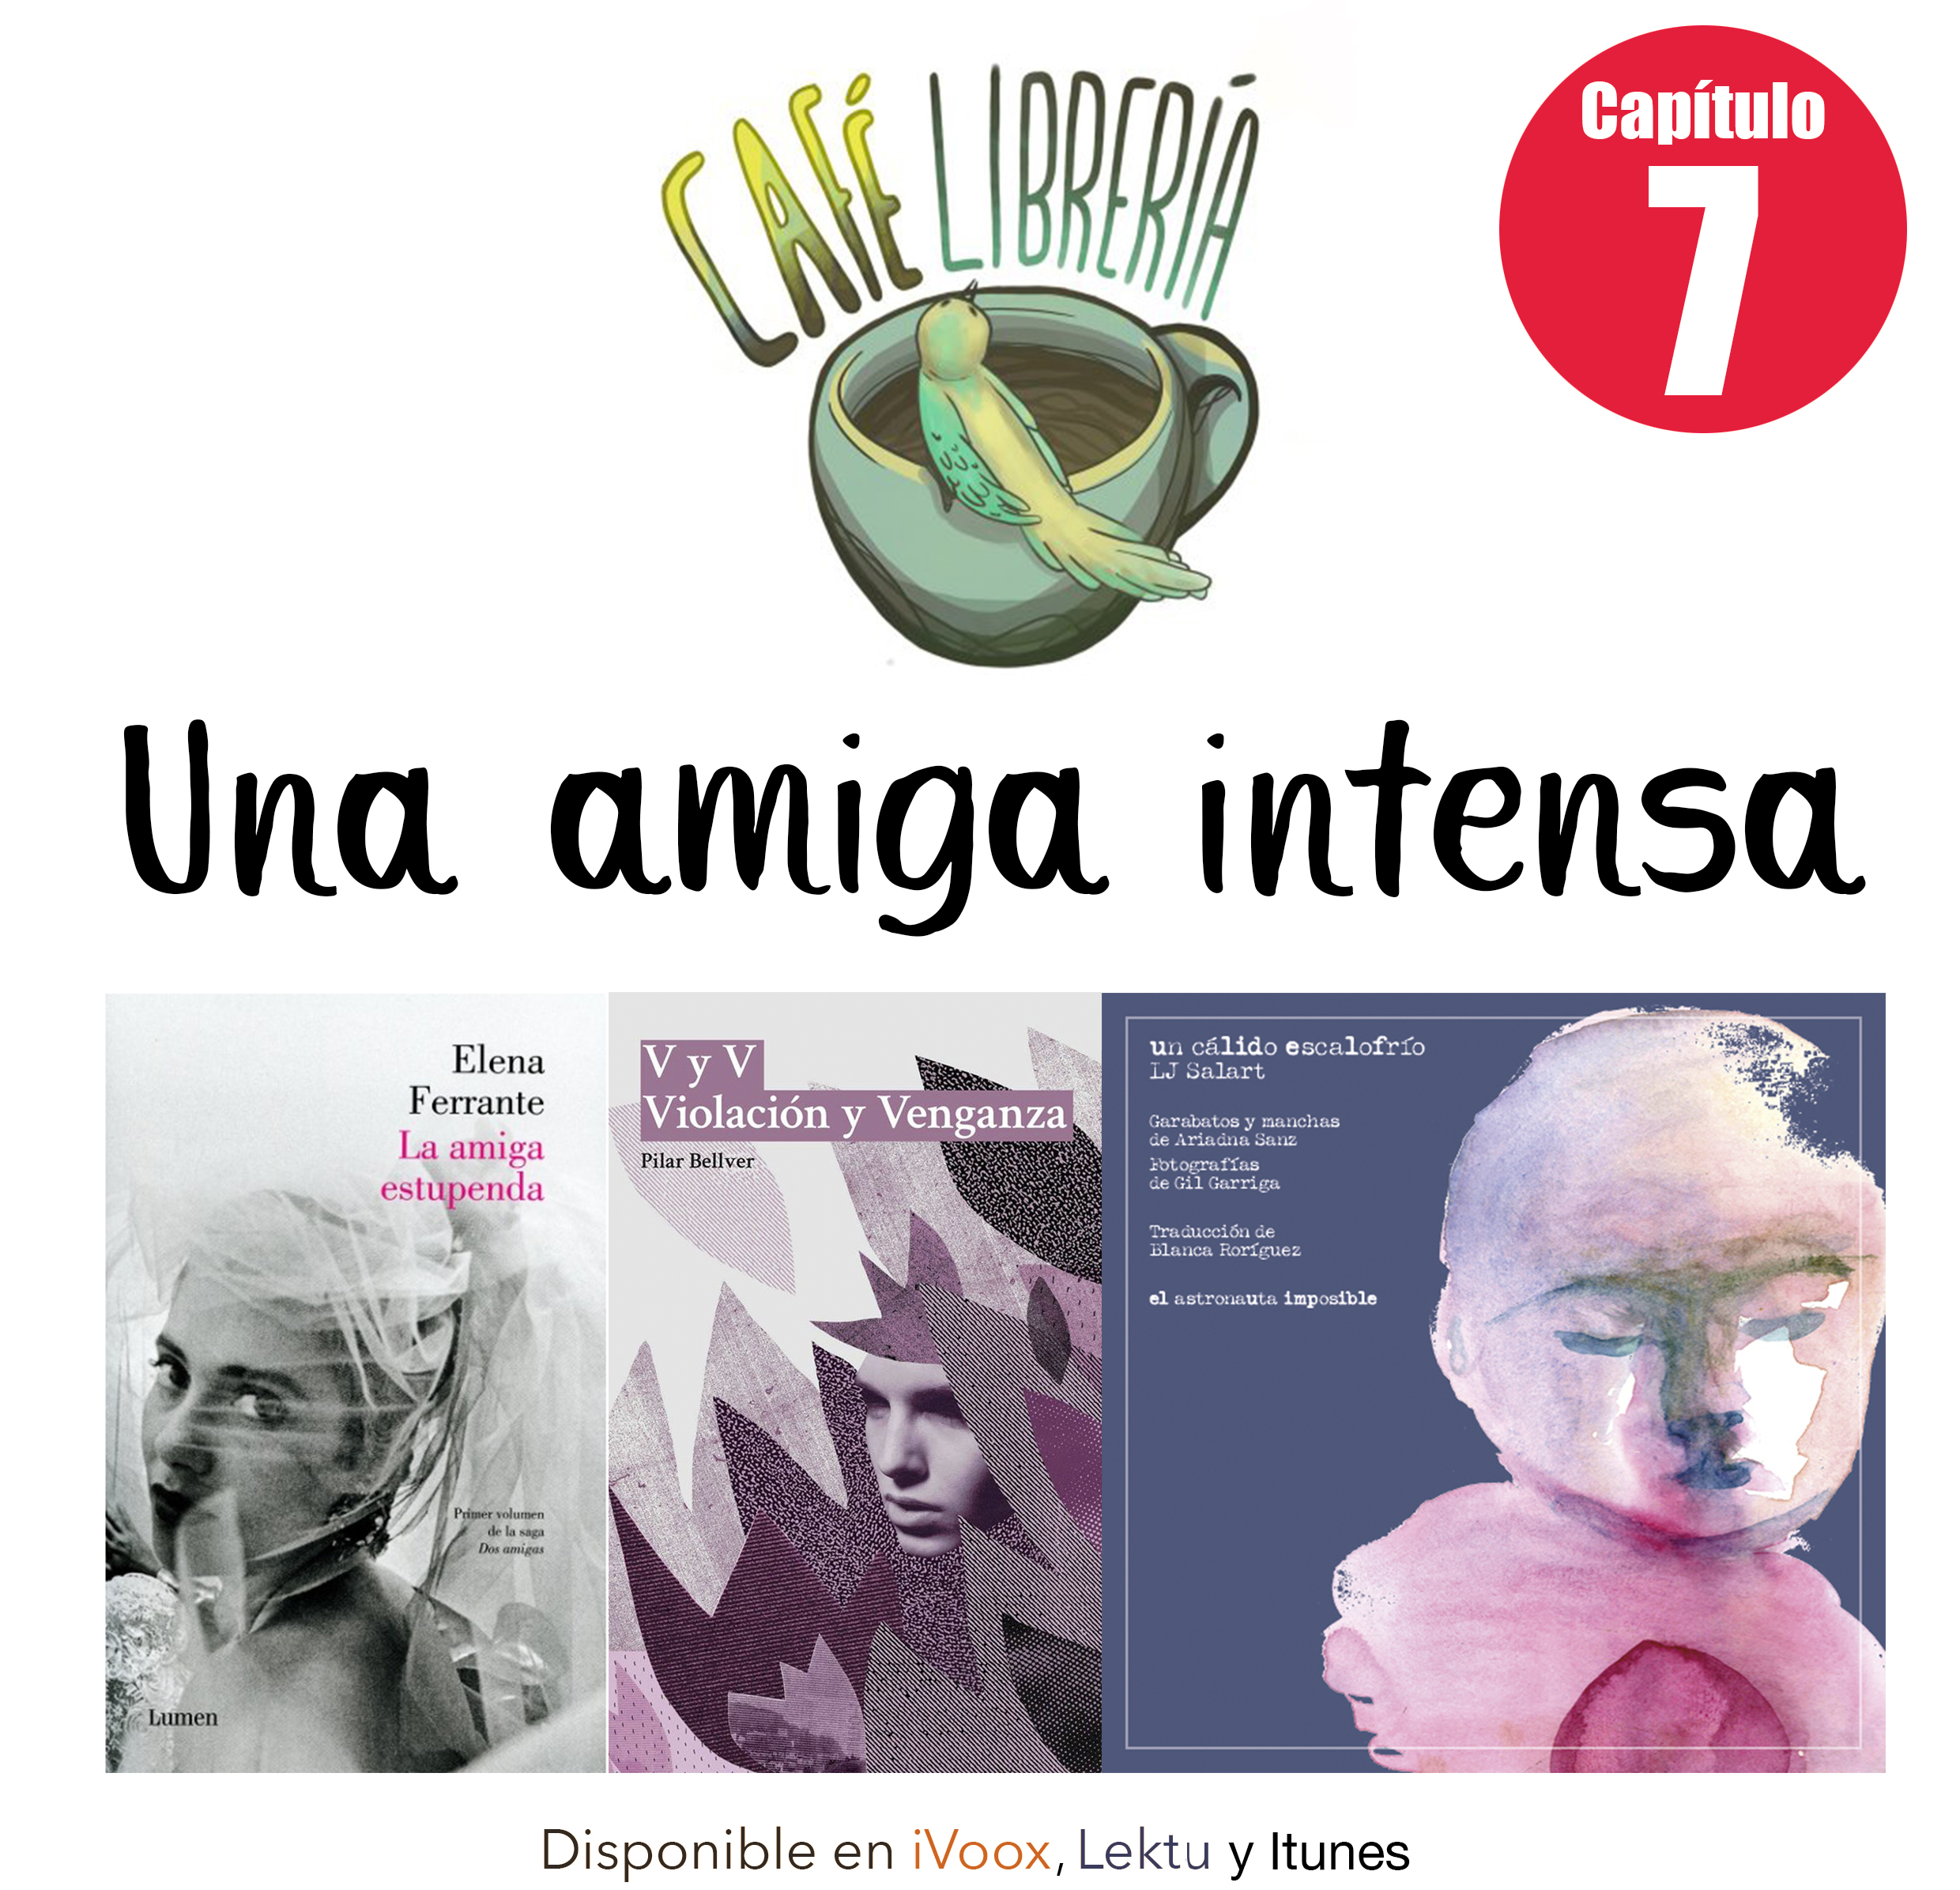 [Podcast] Capítulo 7: Una amiga intensa